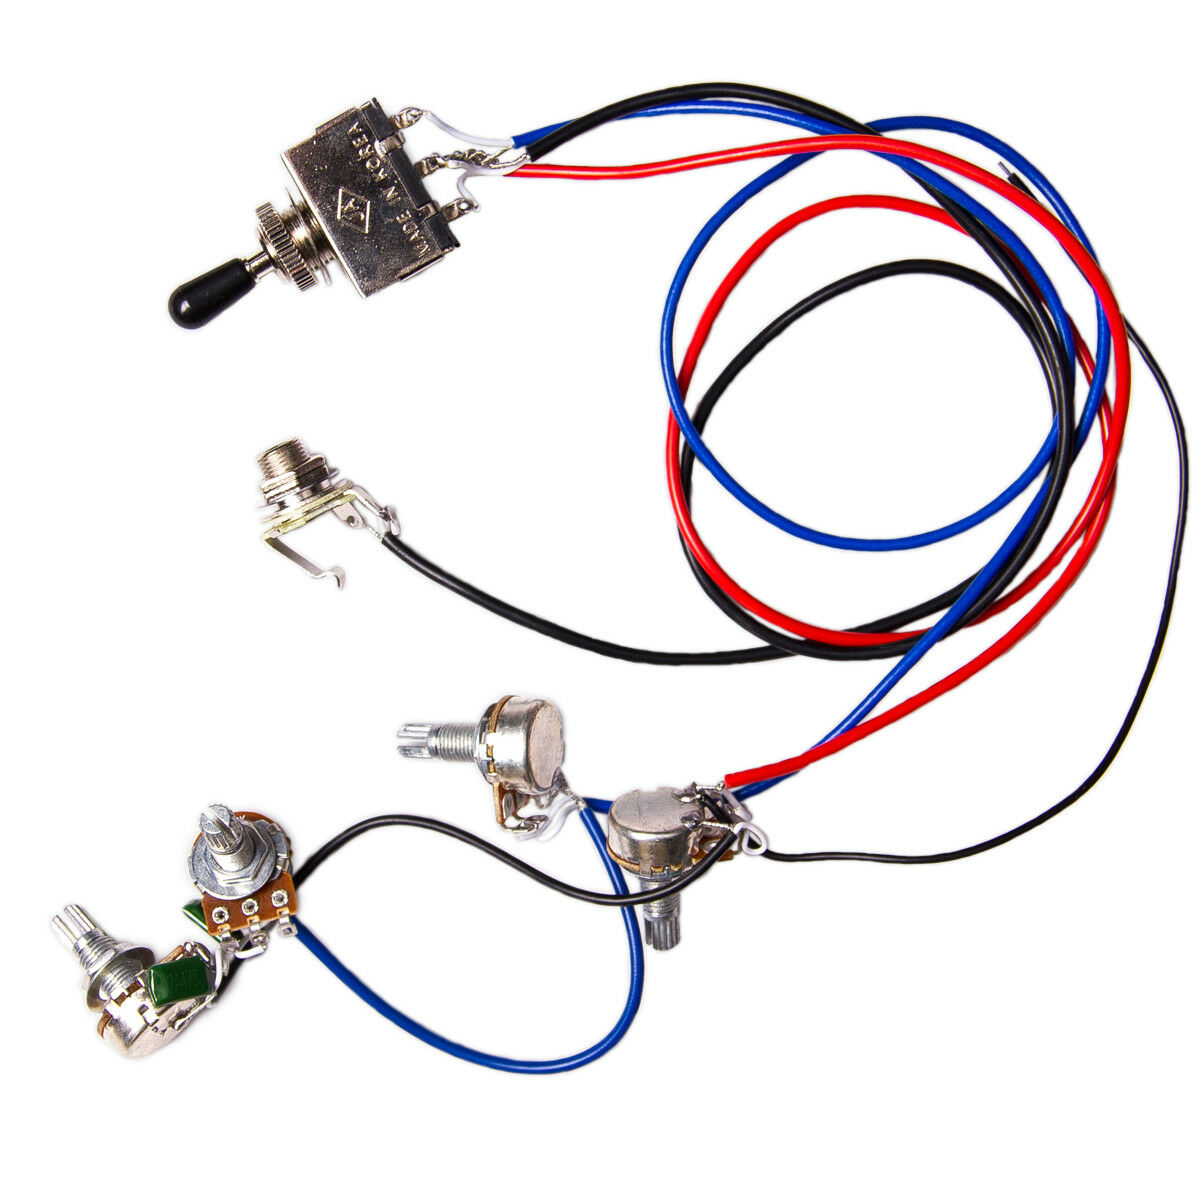 hight resolution of details about electric guitar wiring harness kit 2v2t 3 way switch for guitar parts